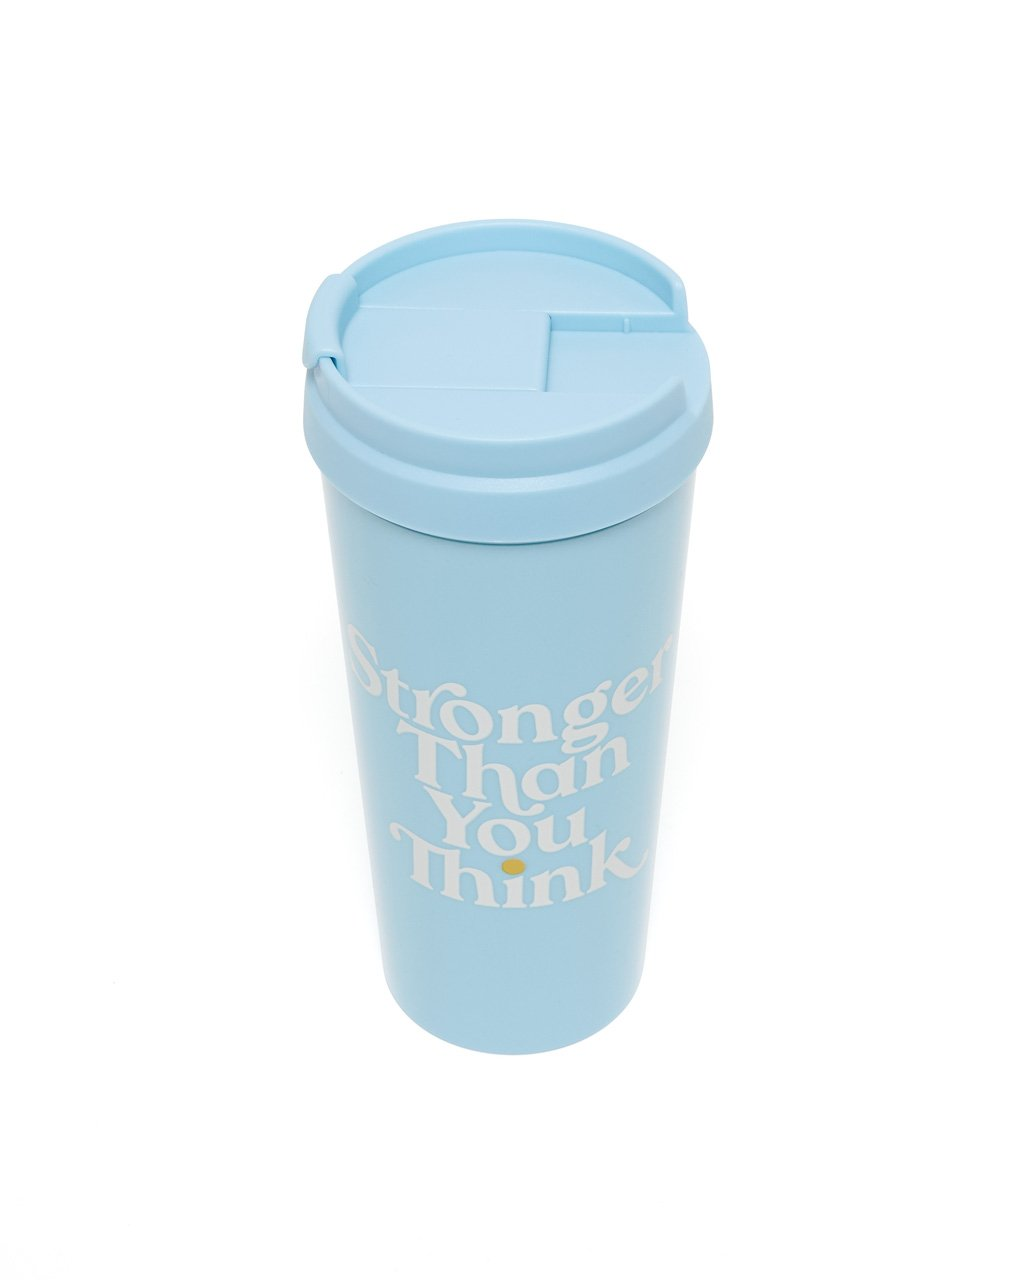 light blue acrylic thermal mug with a light blue spill proof lid